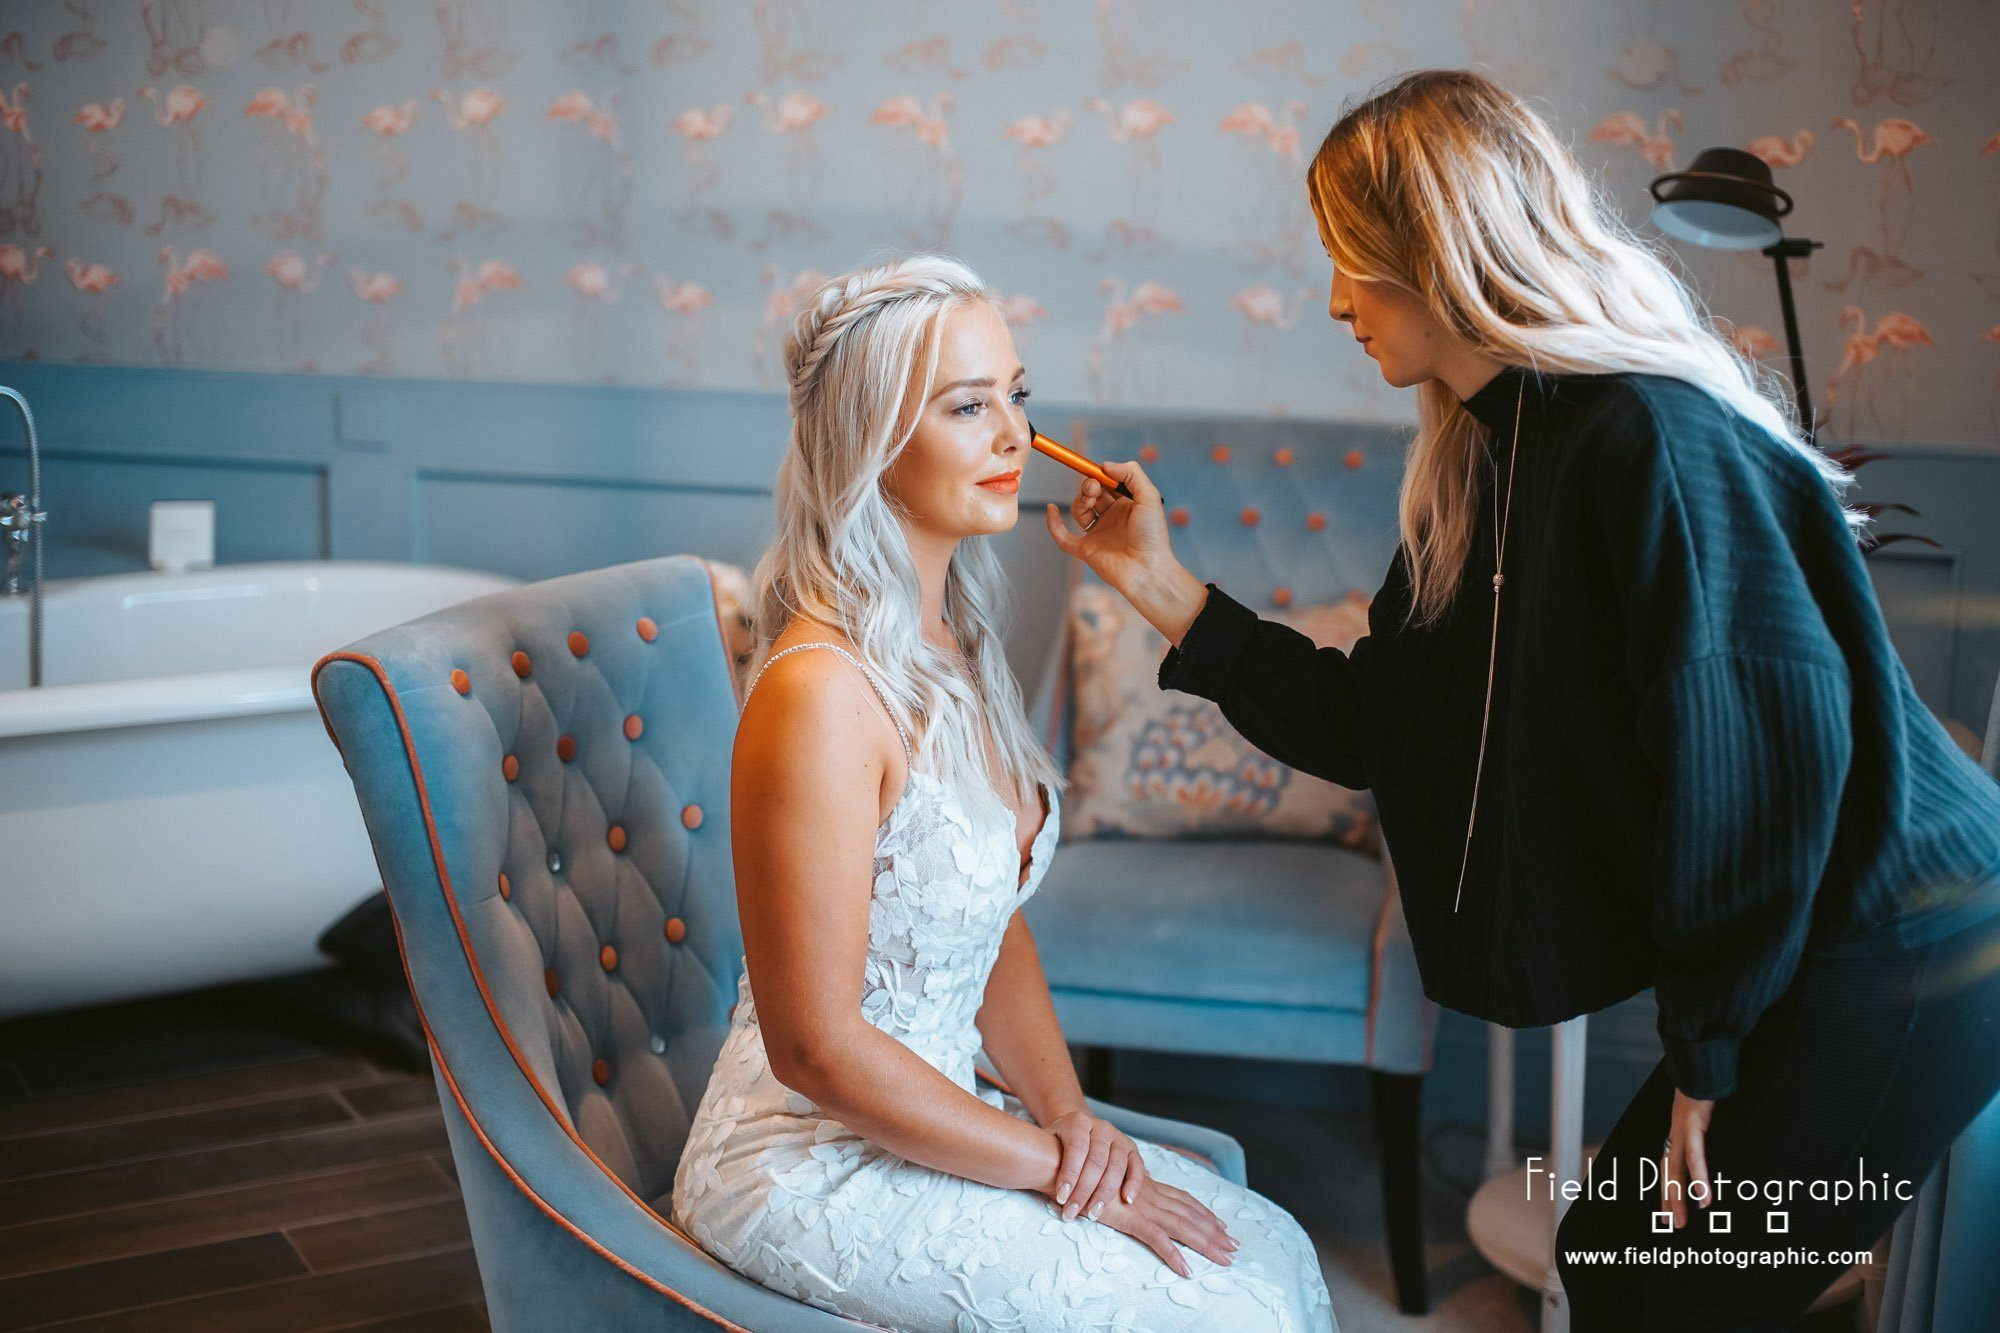 Makeup by Sophie Downing